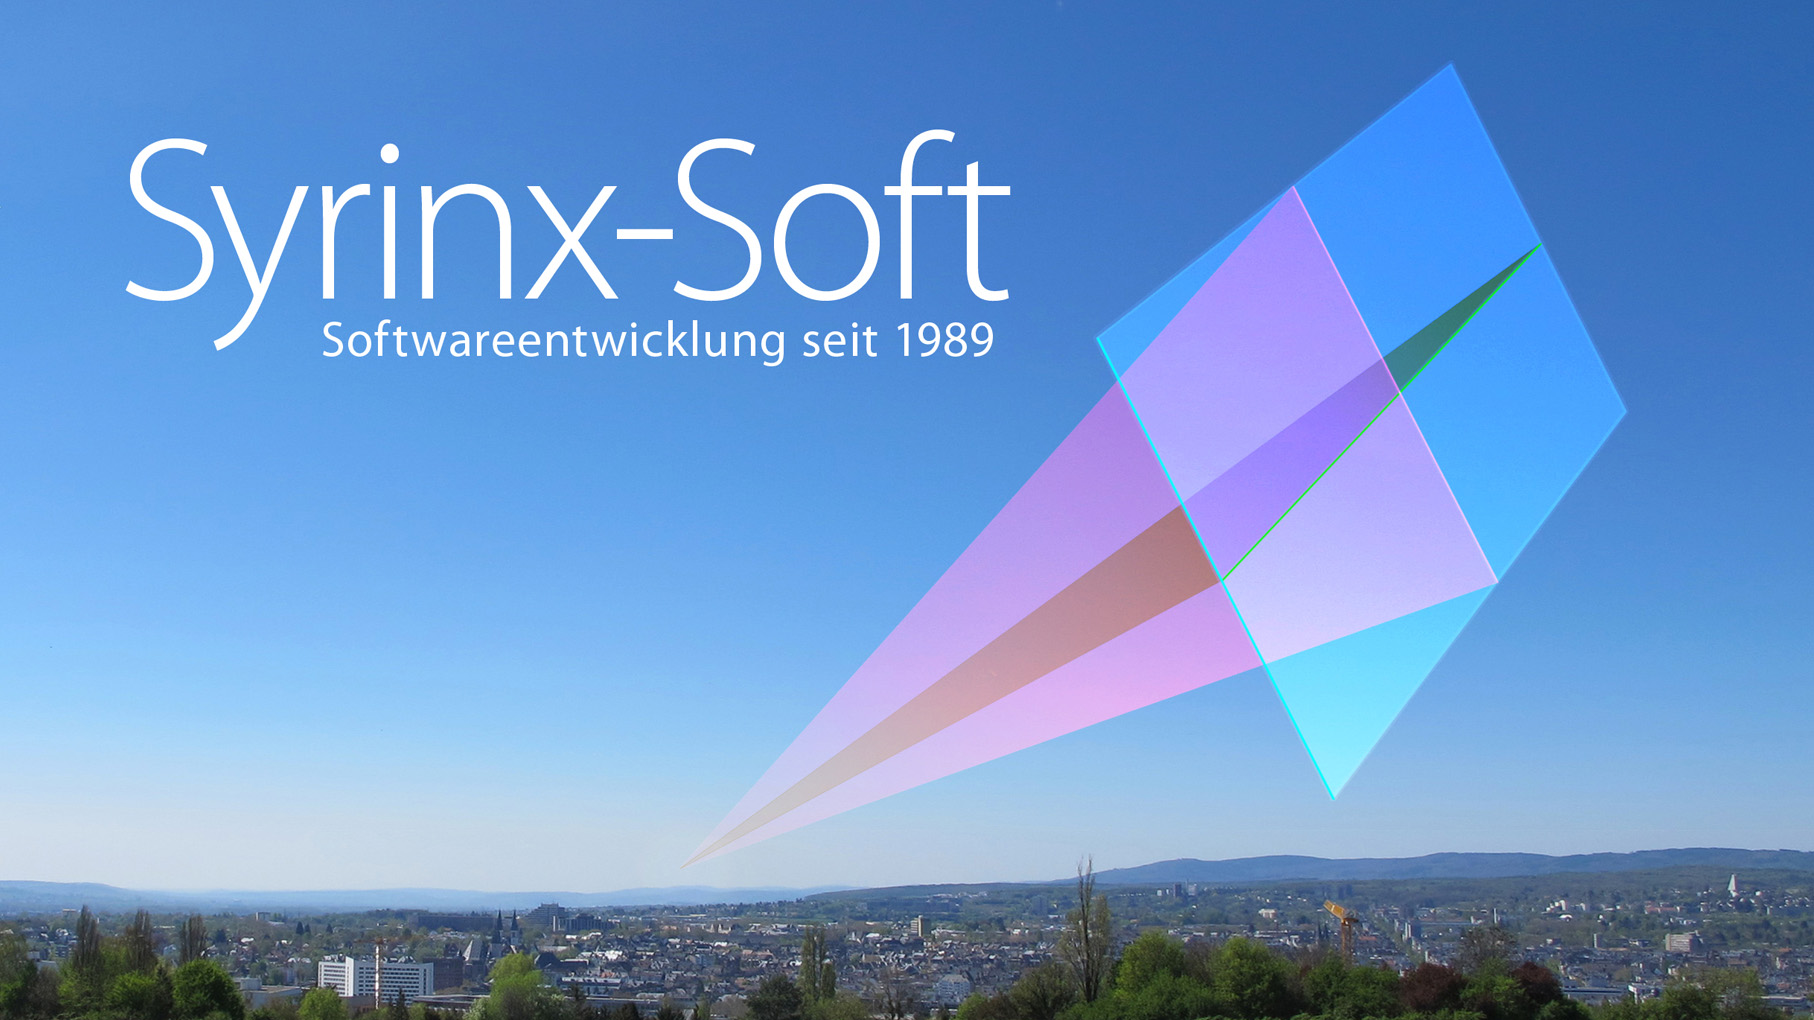 syrinx-soft-header-motiv